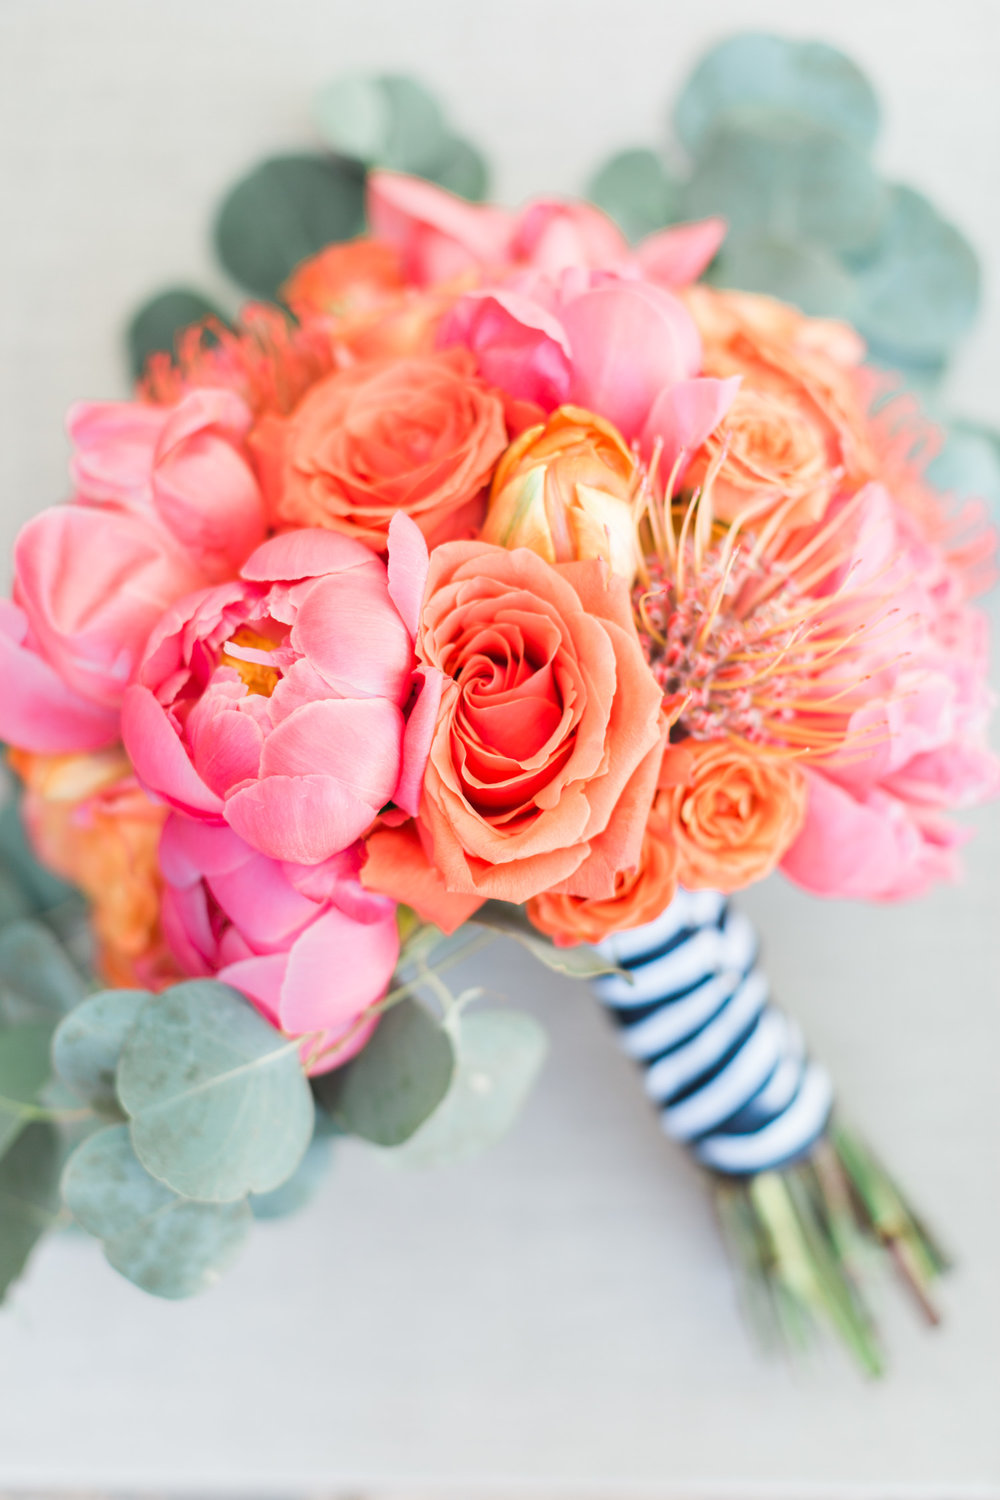 Beautiful bridal bouquet with pink peonies, protea pincushion, salmon and orange roses tied with a striped navy and white ribbon